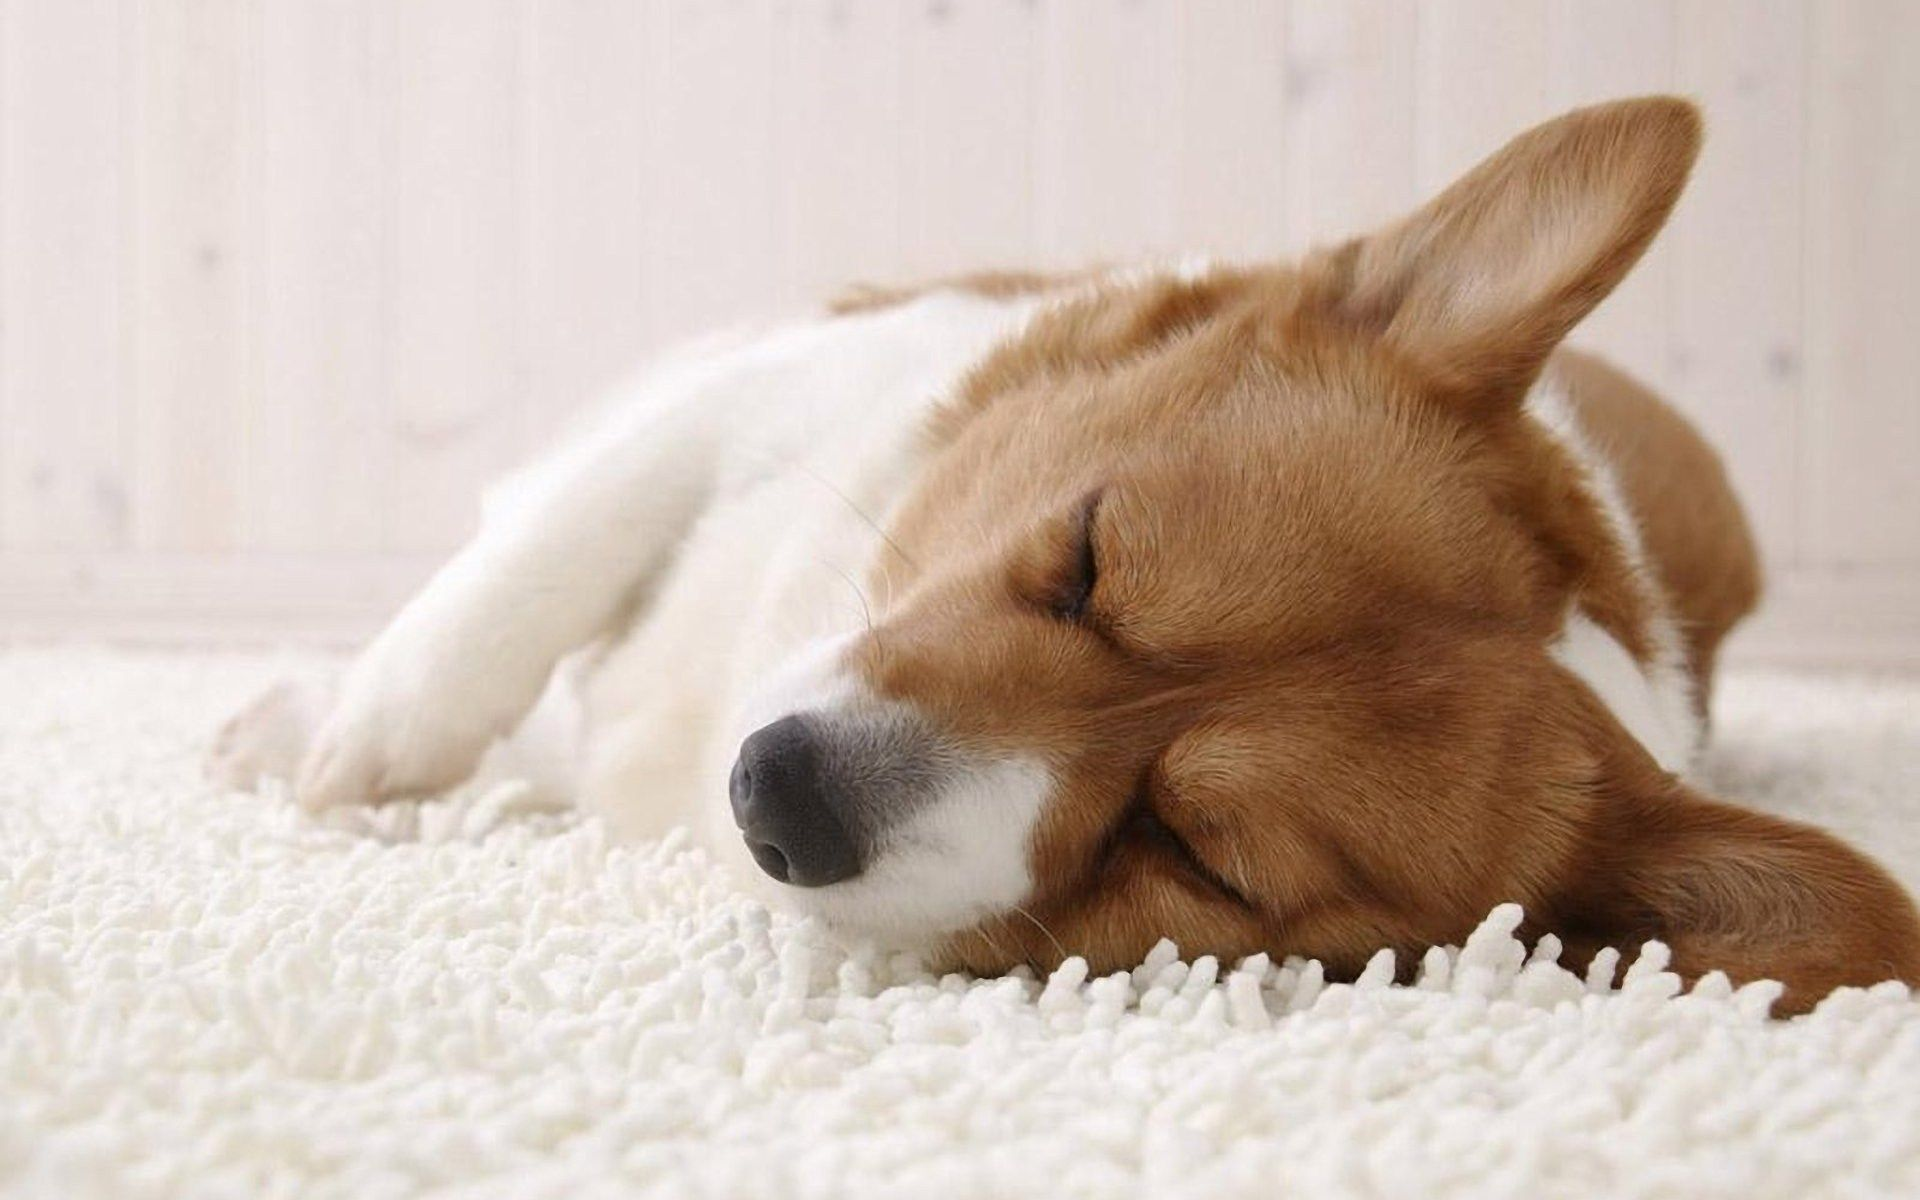 Little Cute Sleeping Corgi I Love Dogs With Short Legs Corgi Sleeping Corgi Pembroke Welsh Corgi